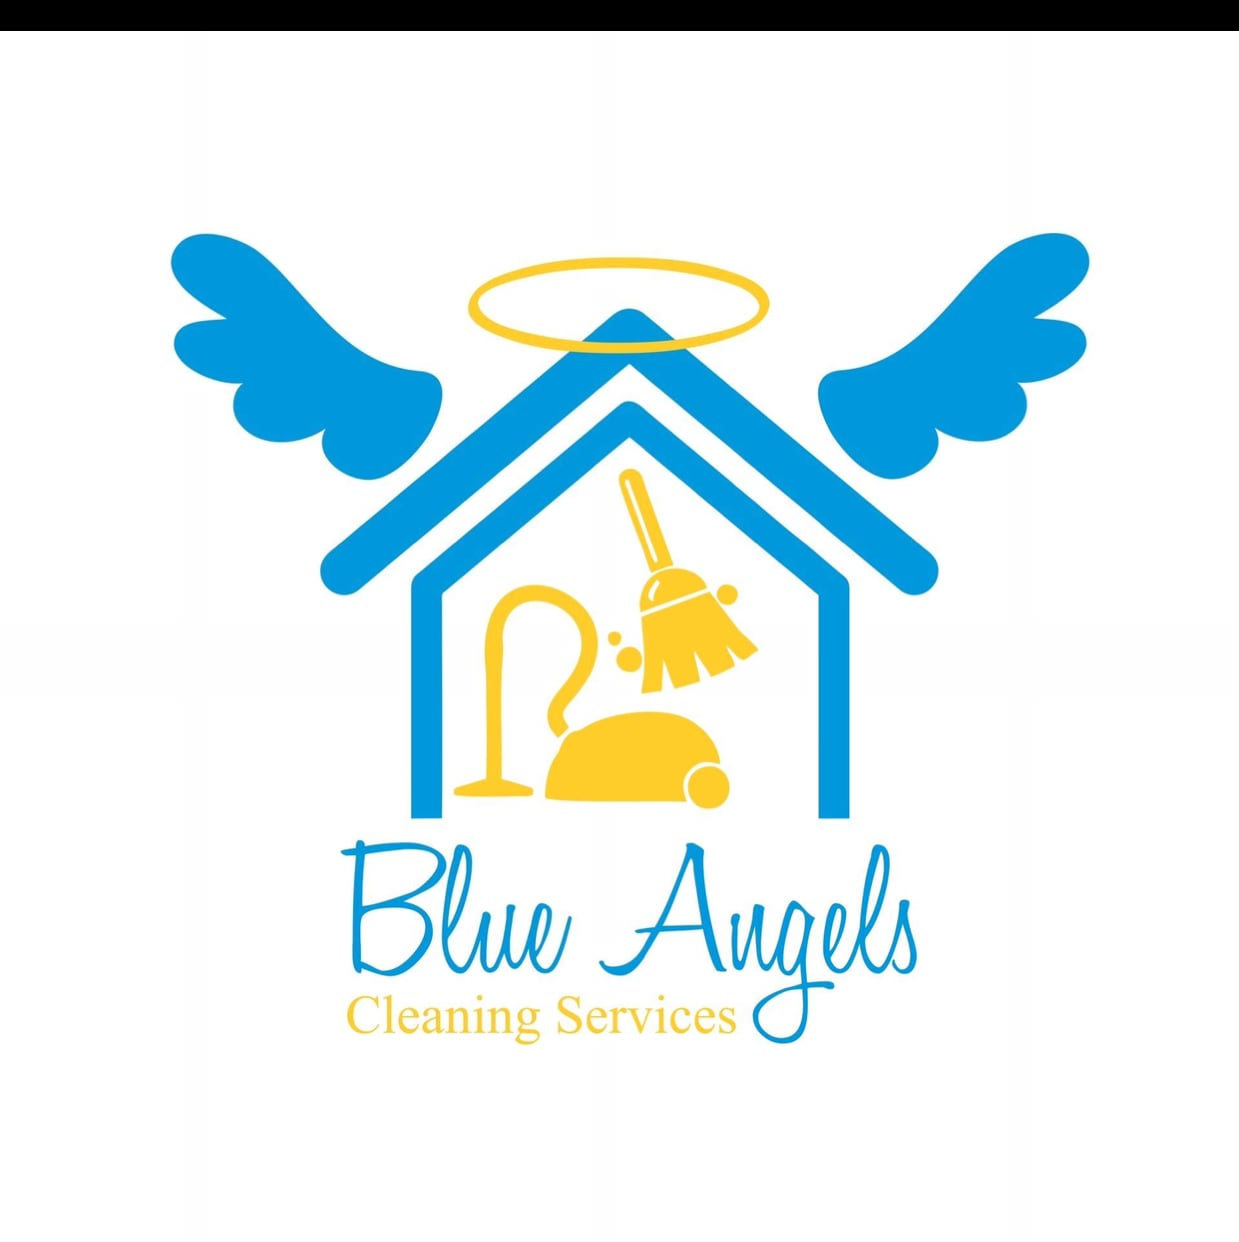 Blue Angels Cleaning Services